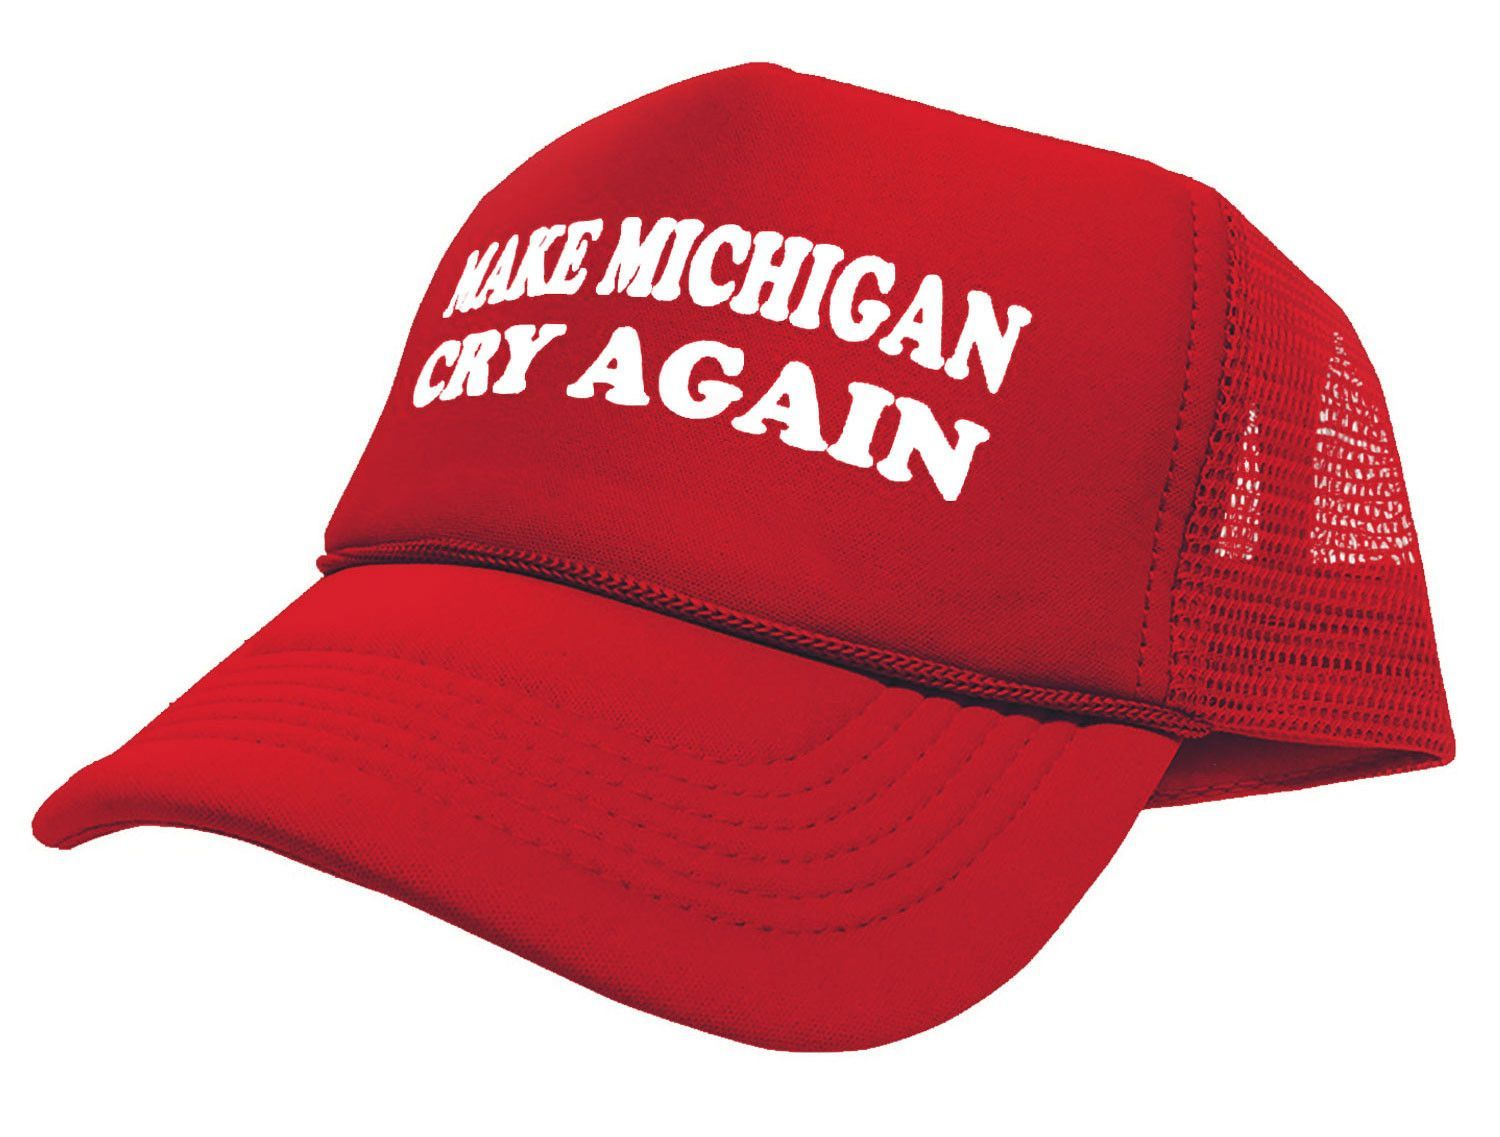 a36792315d2 Limited Edition Make Michigan Cry Again Tailgate Hat